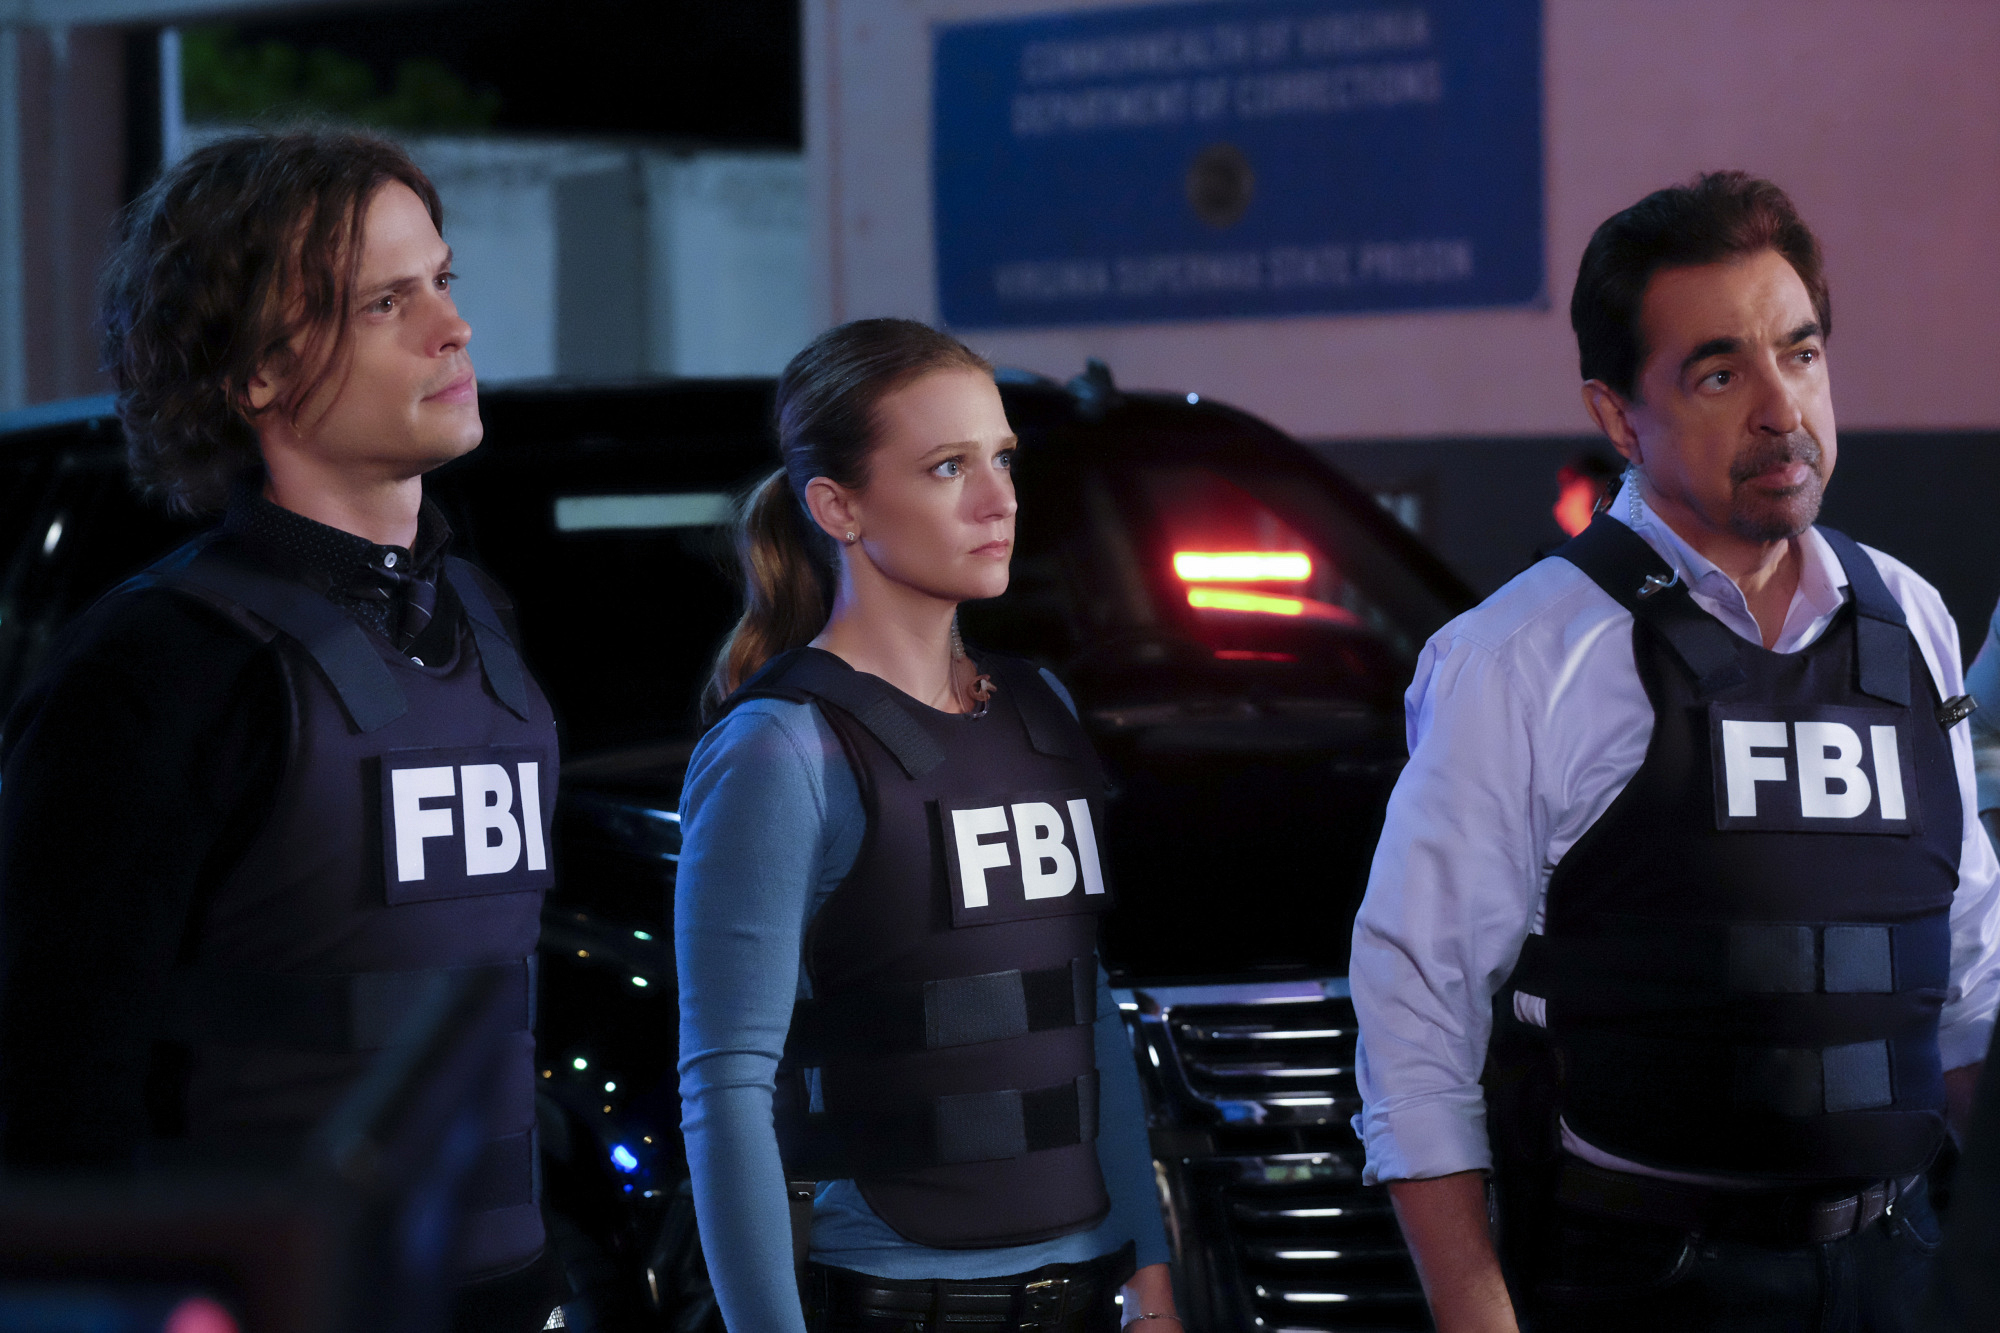 Criminal Minds returns for a 12th season on Wednesday, Sept. 28 at 9/8c.